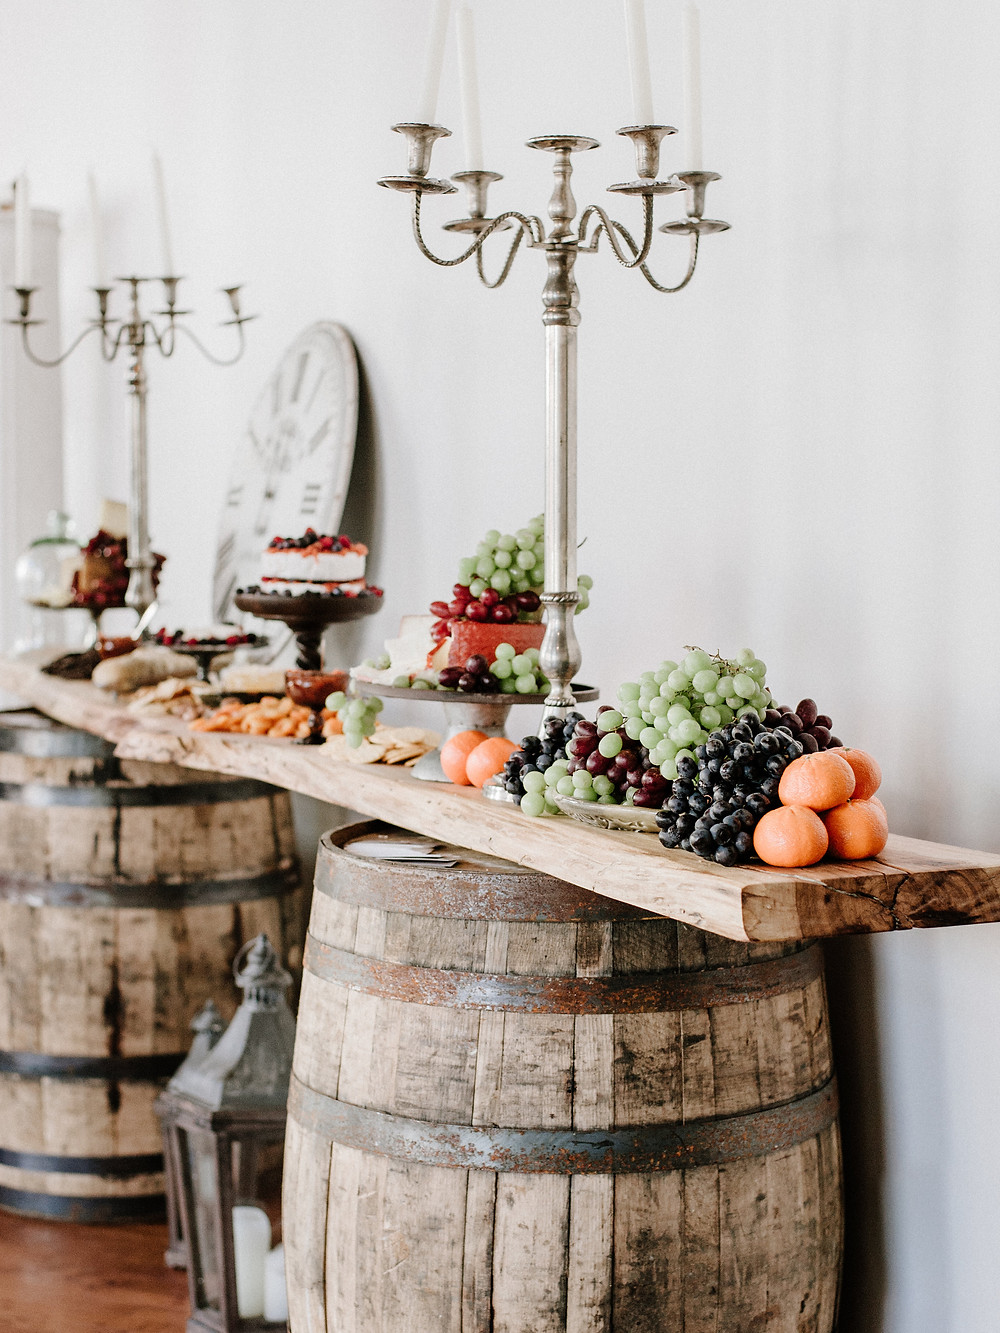 Balanced on two whiskey barrels, a live-edge charcuterie board is filled with delicious appetizers